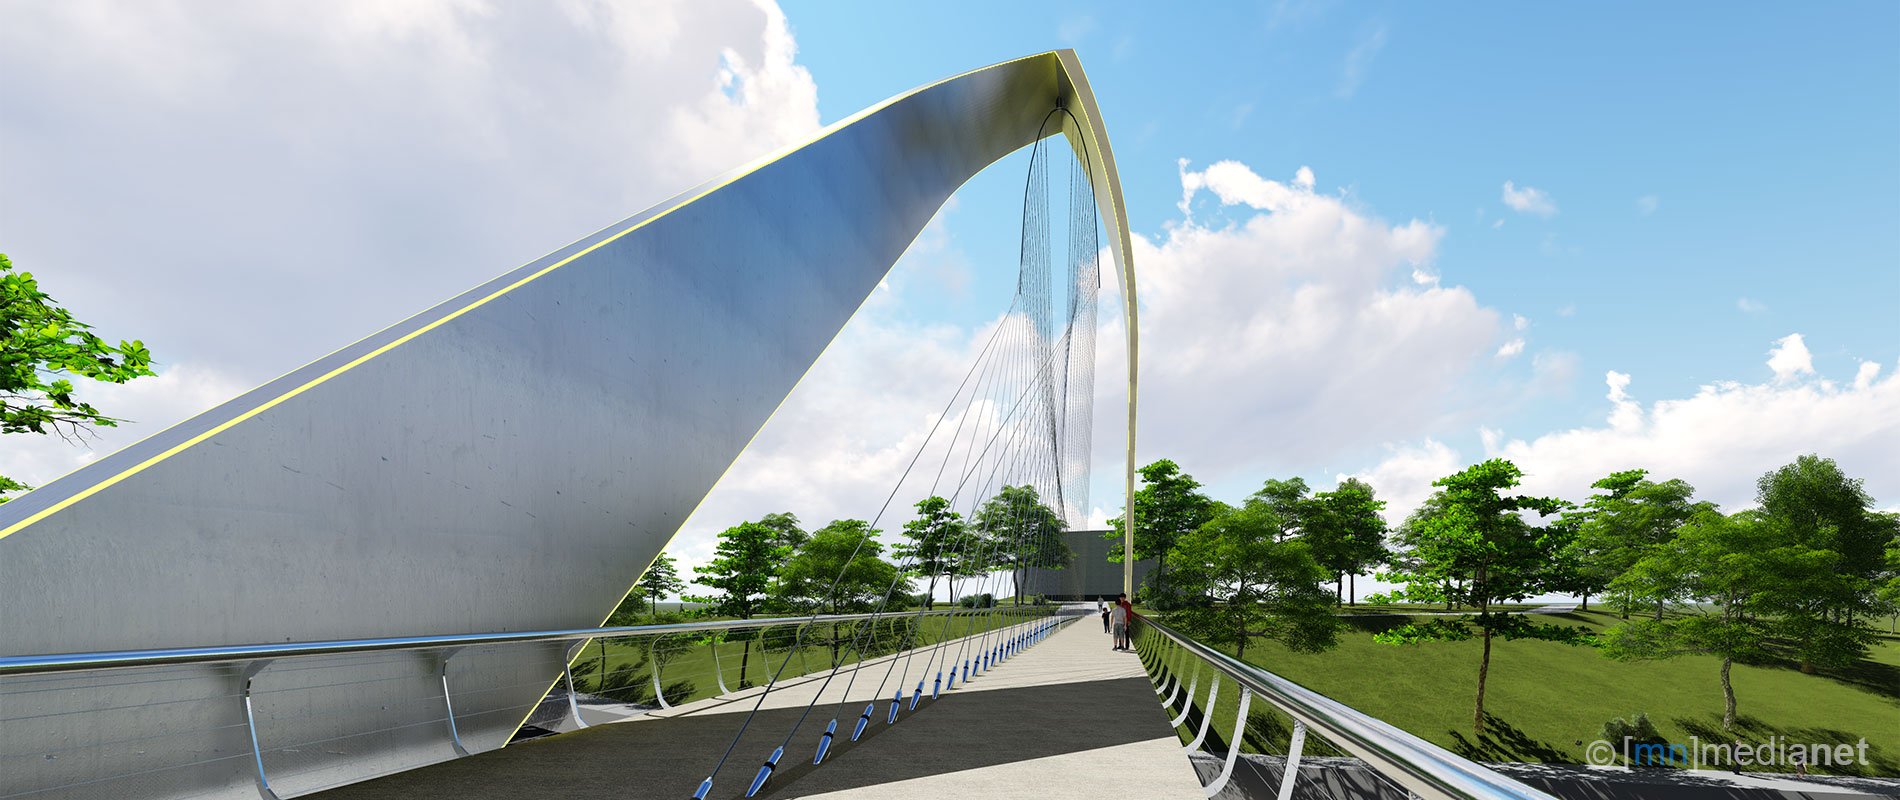 canal crossing bridge designs